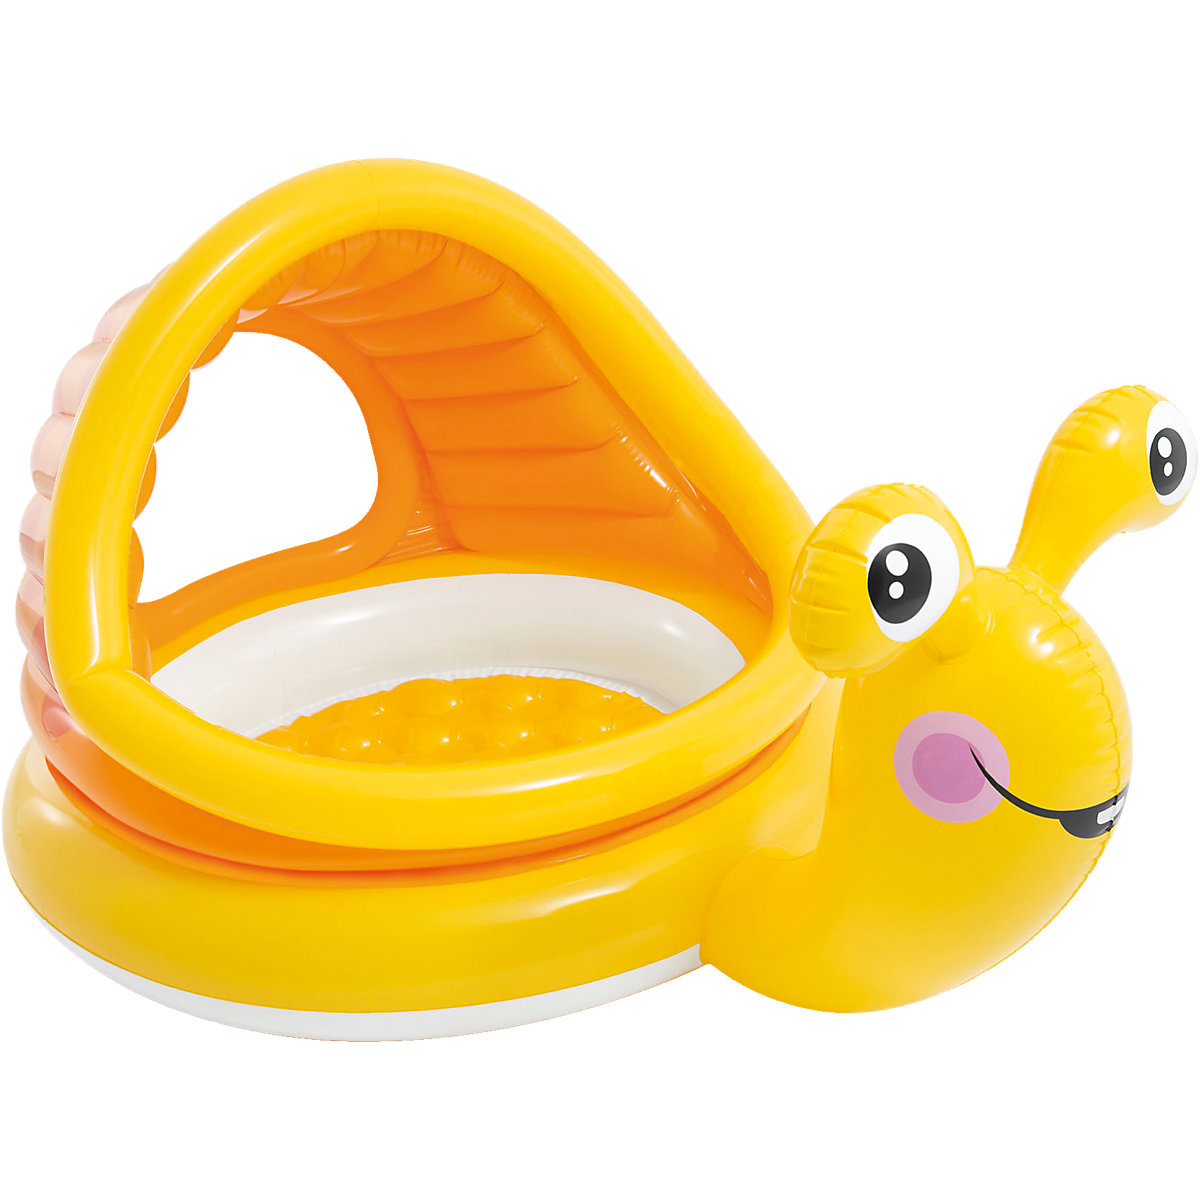 INTEX Swimming Pool 7225934 inflatable pools Accessories Activity & Gear tub Kids Baby for children china inflatable slides supplier large inflatable slide toys for children playground ocean world theme